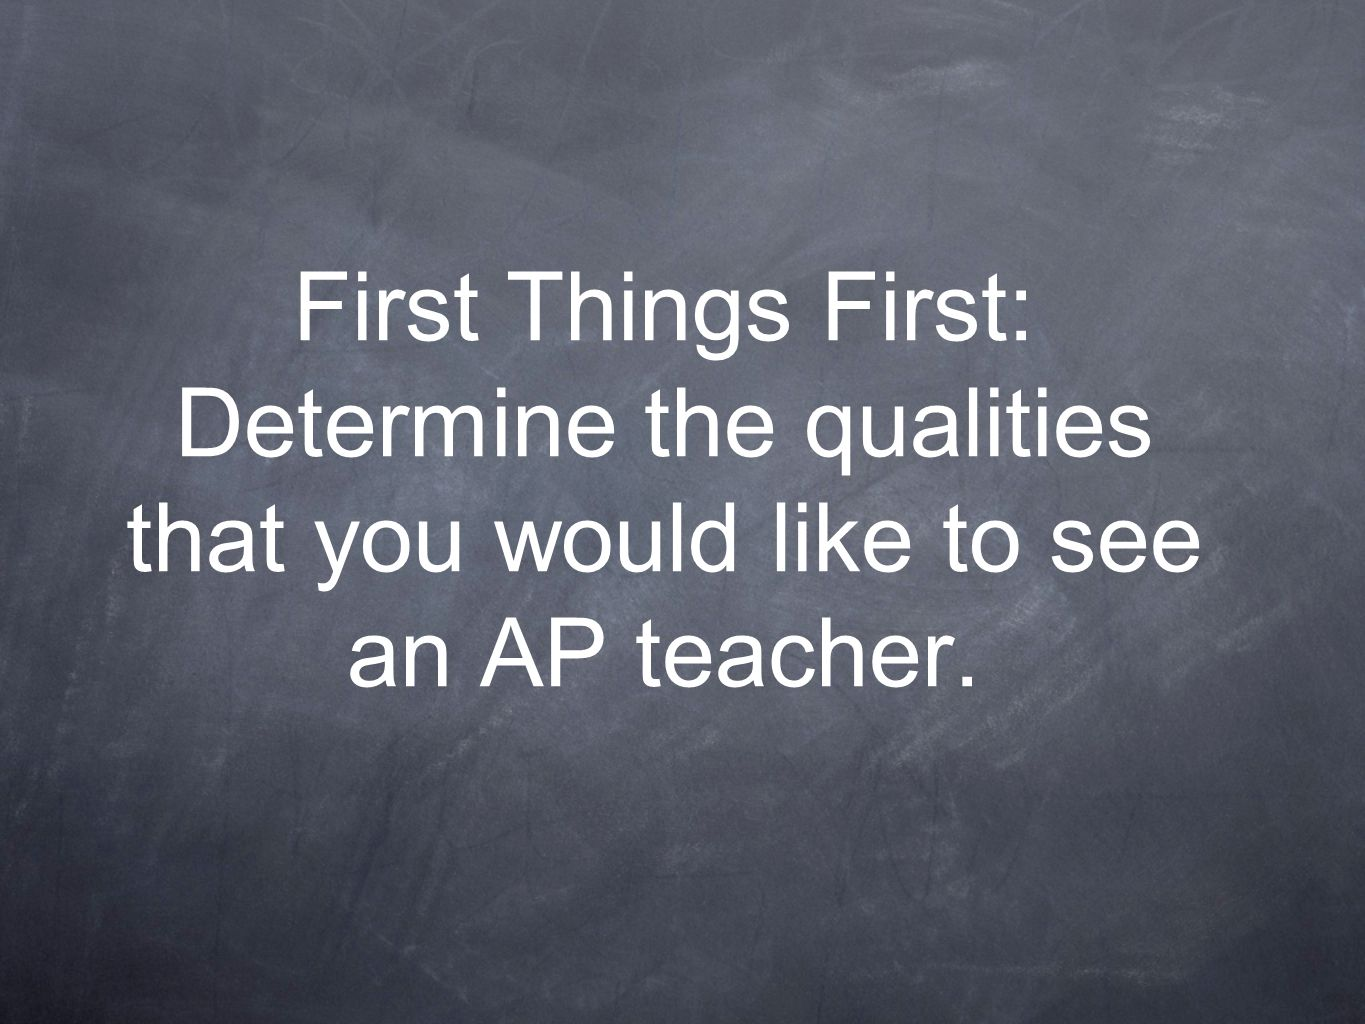 Question 4: If you were required to be mentored as a new AP teacher, which would you like to have input on.